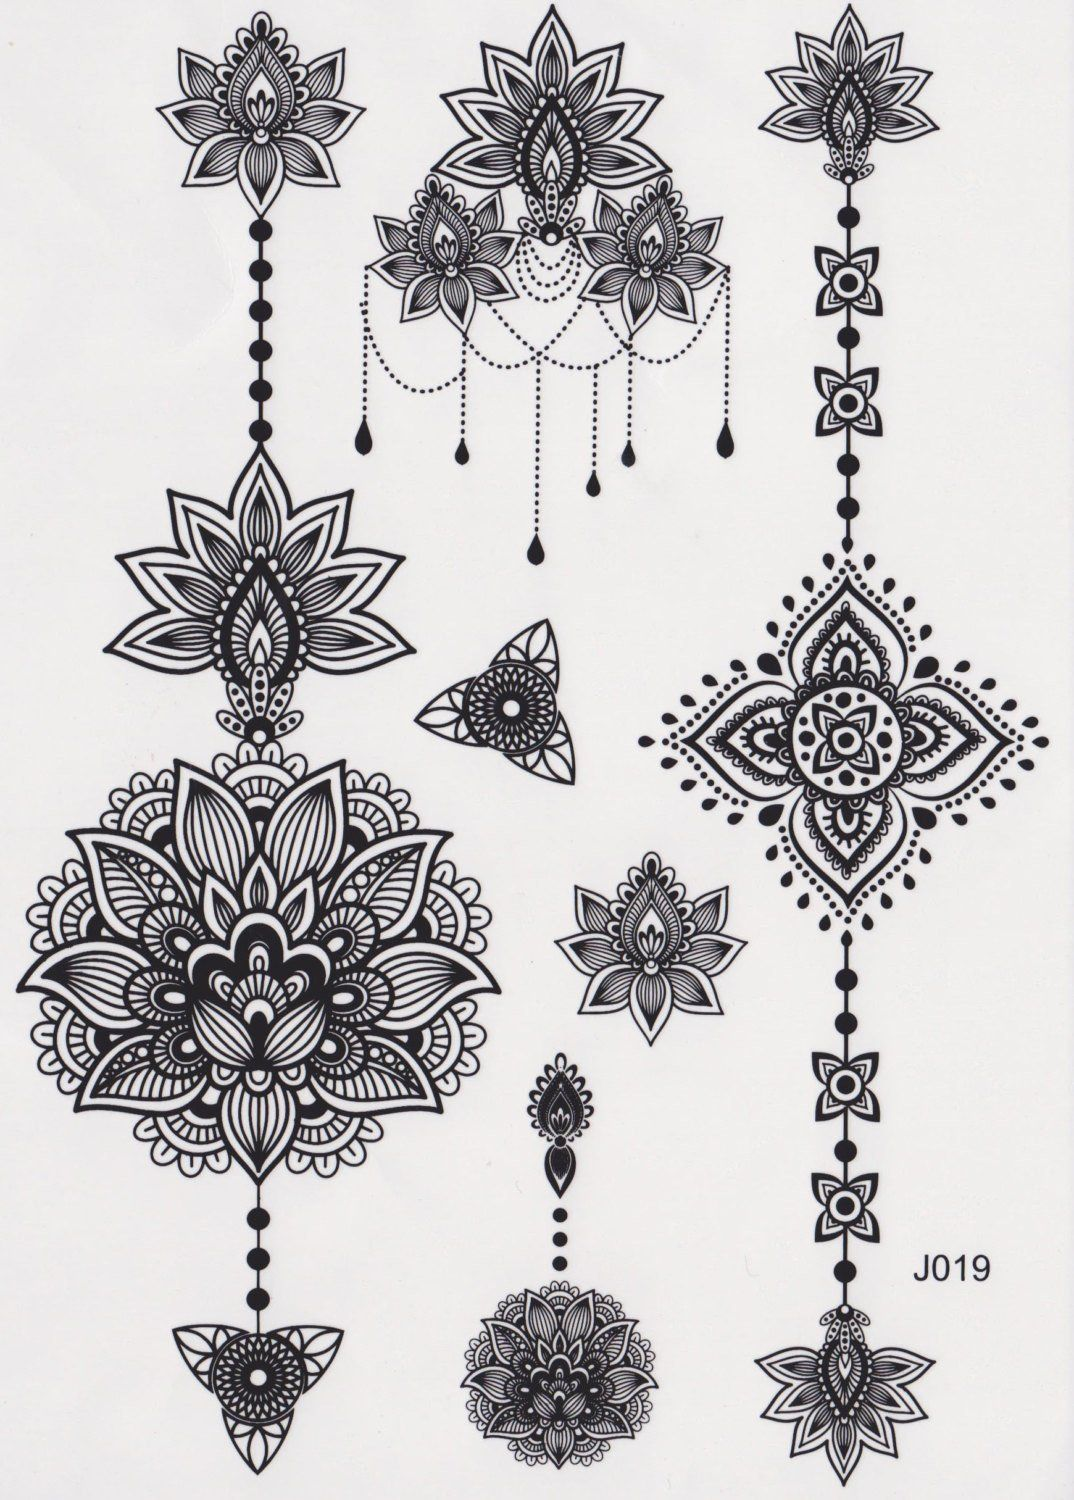 1d9e7a4f5 Aiyana Tribal Lotus Mandala Temporary Tattoo | Your Pinterest Likes ...